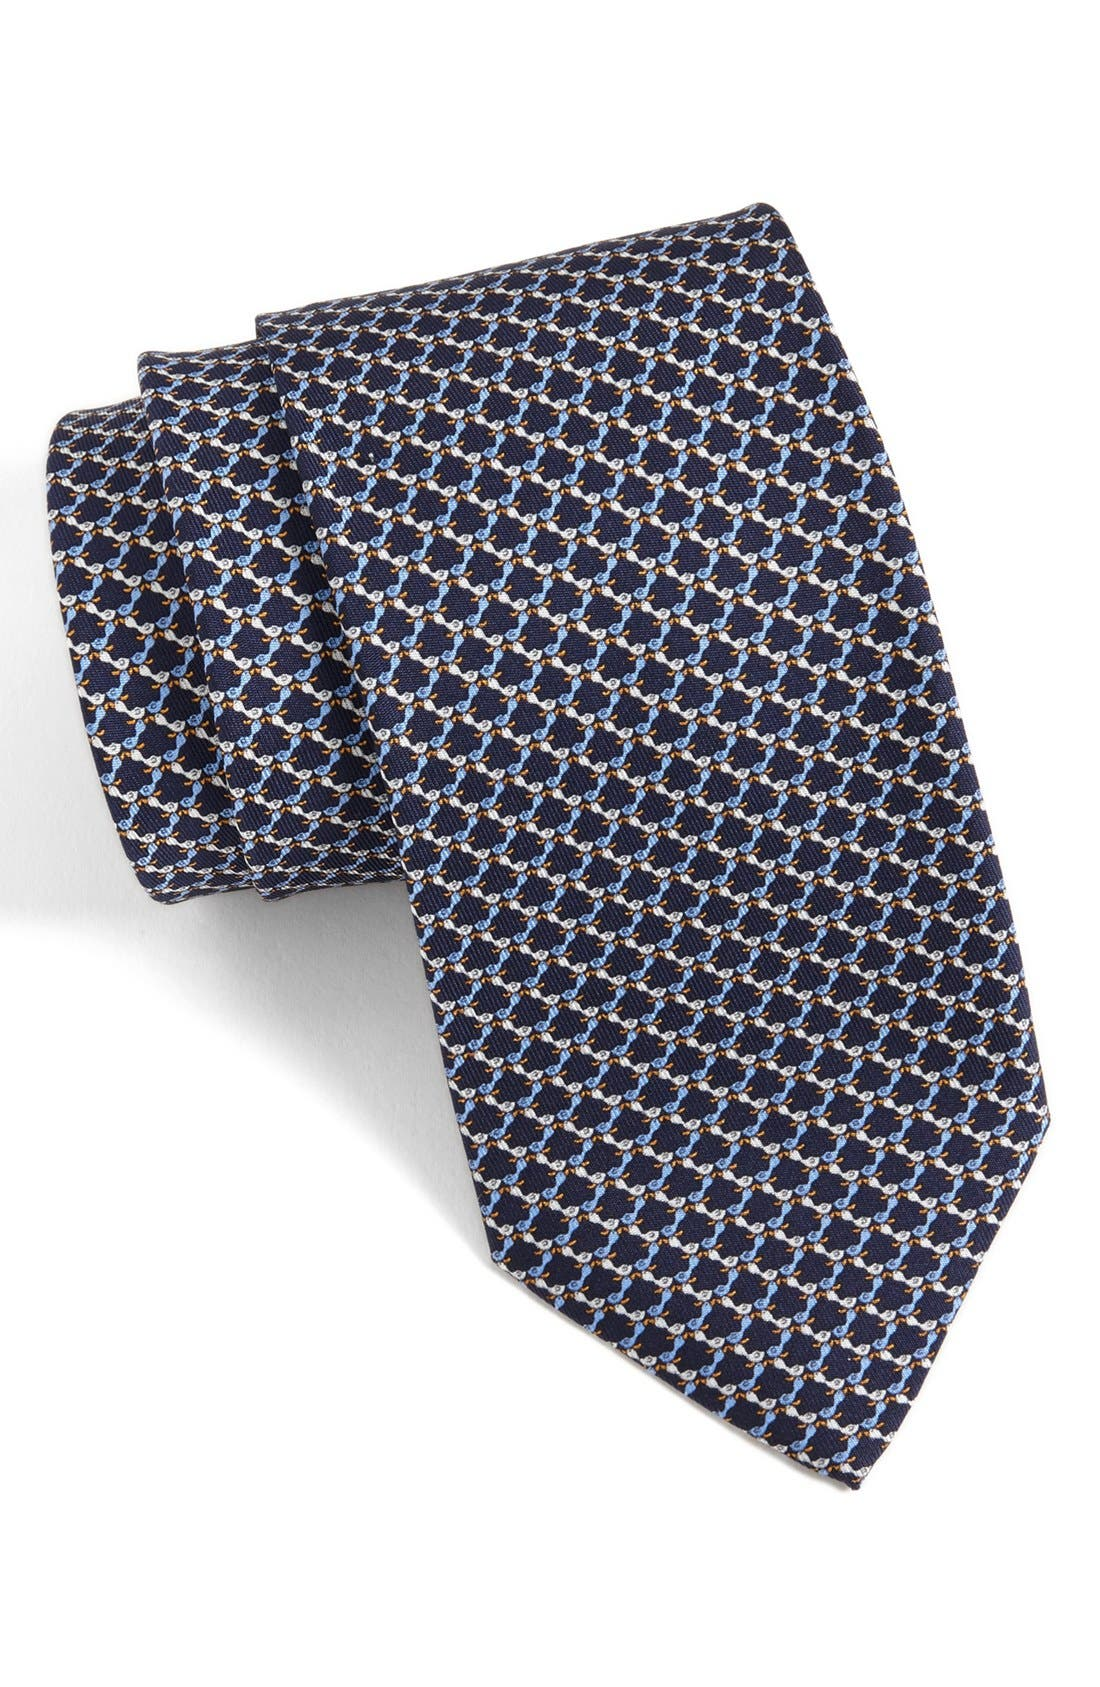 Alternate Image 1 Selected - Salvatore Ferragamo Bird Motif Silk Tie